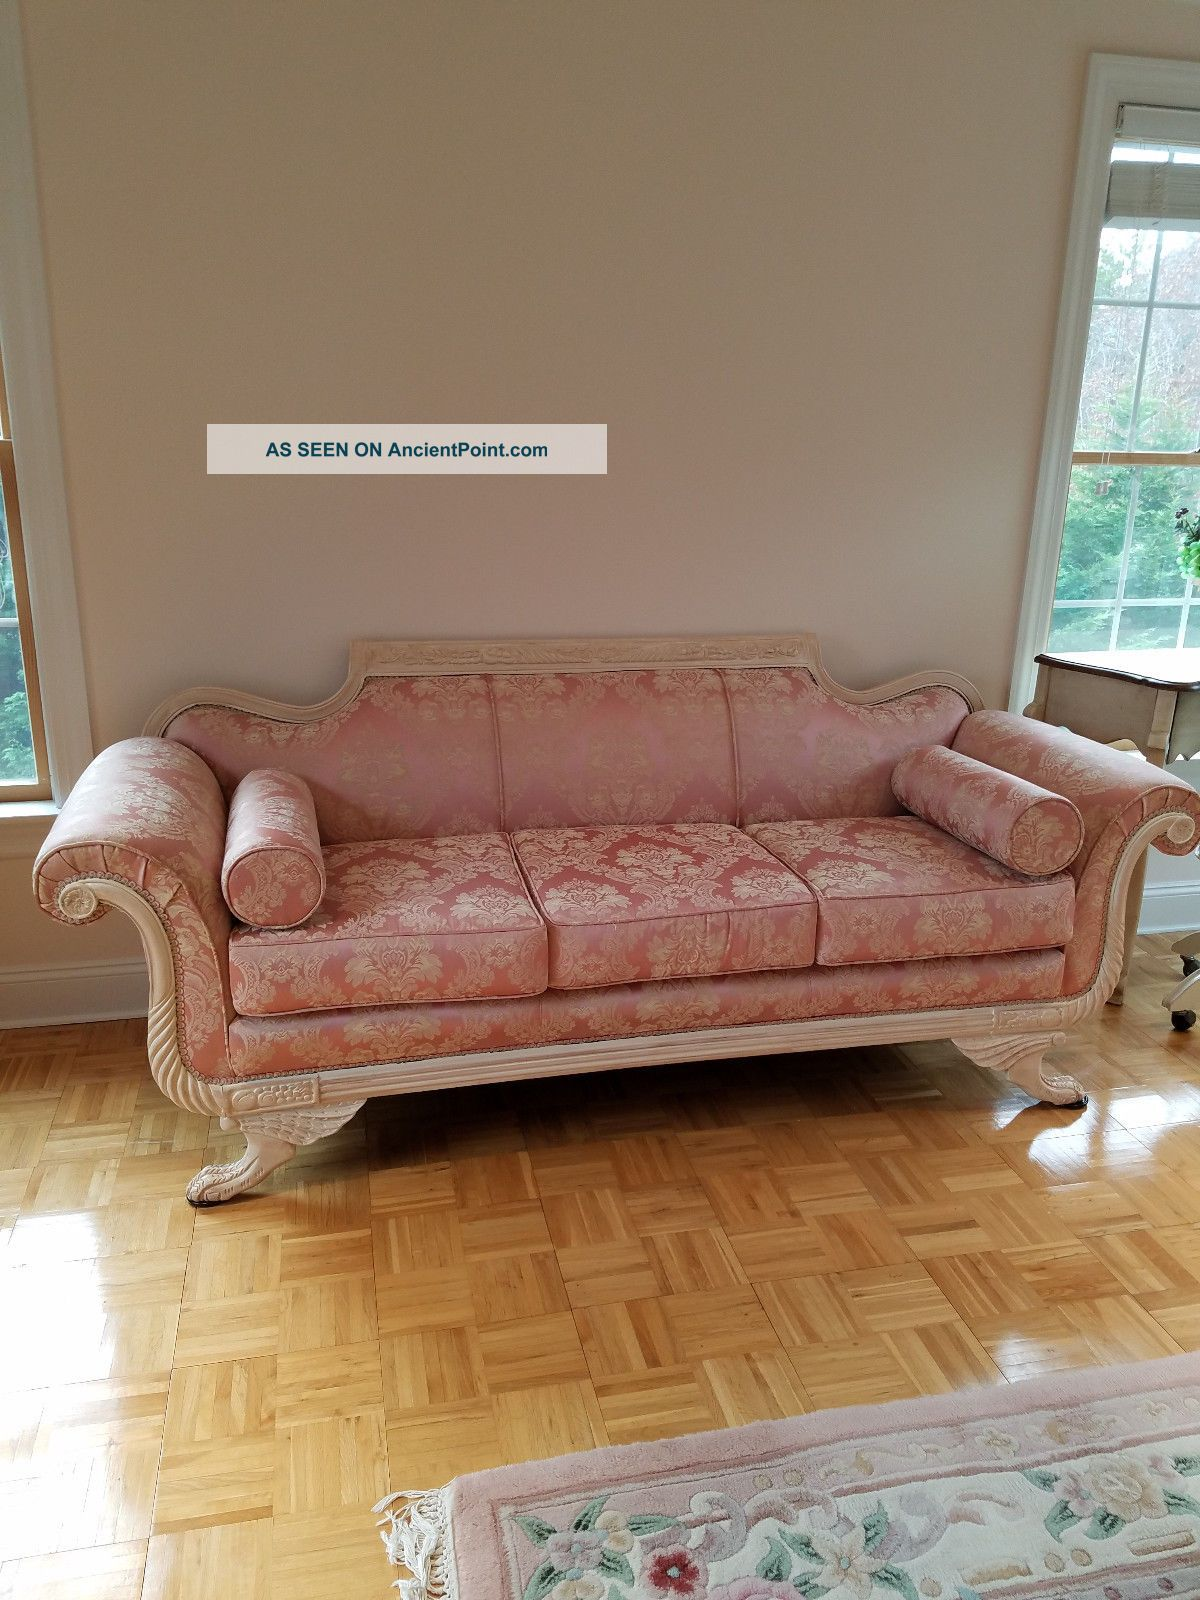 Sofa Duncan Phyfe Classic Carved Cream Finish Wood 1900-1950 photo